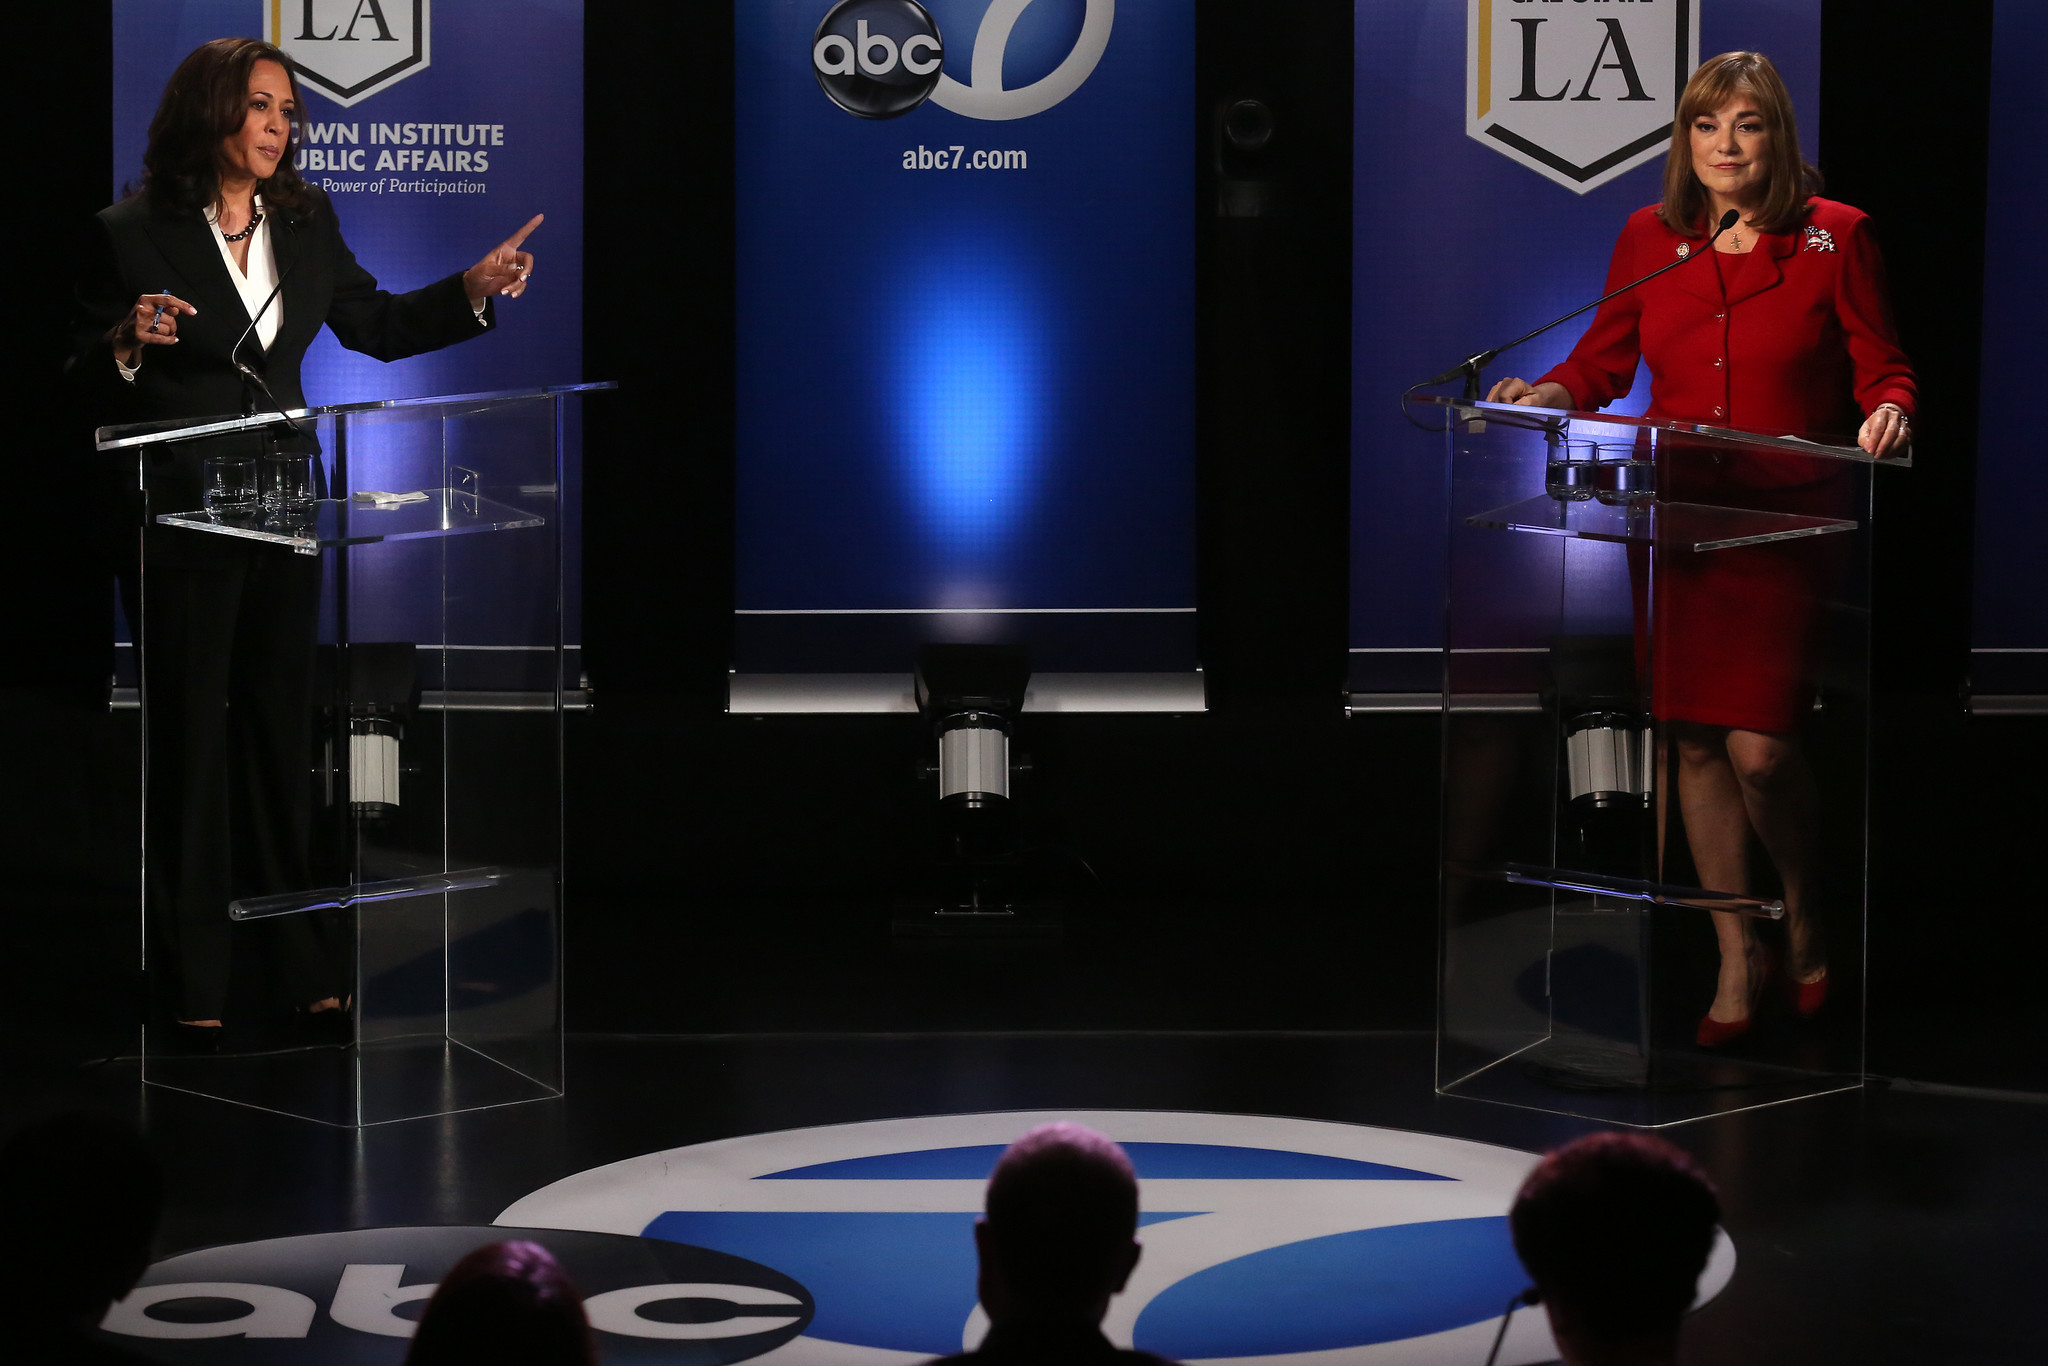 U.S. Senate candidates Kamala Harris, left, points a finger toward rival Loretta Sanchez during their debate at Cal State L.A. on Wednesday, Oct. 5. (Rick Loomis / Los Angeles Times)